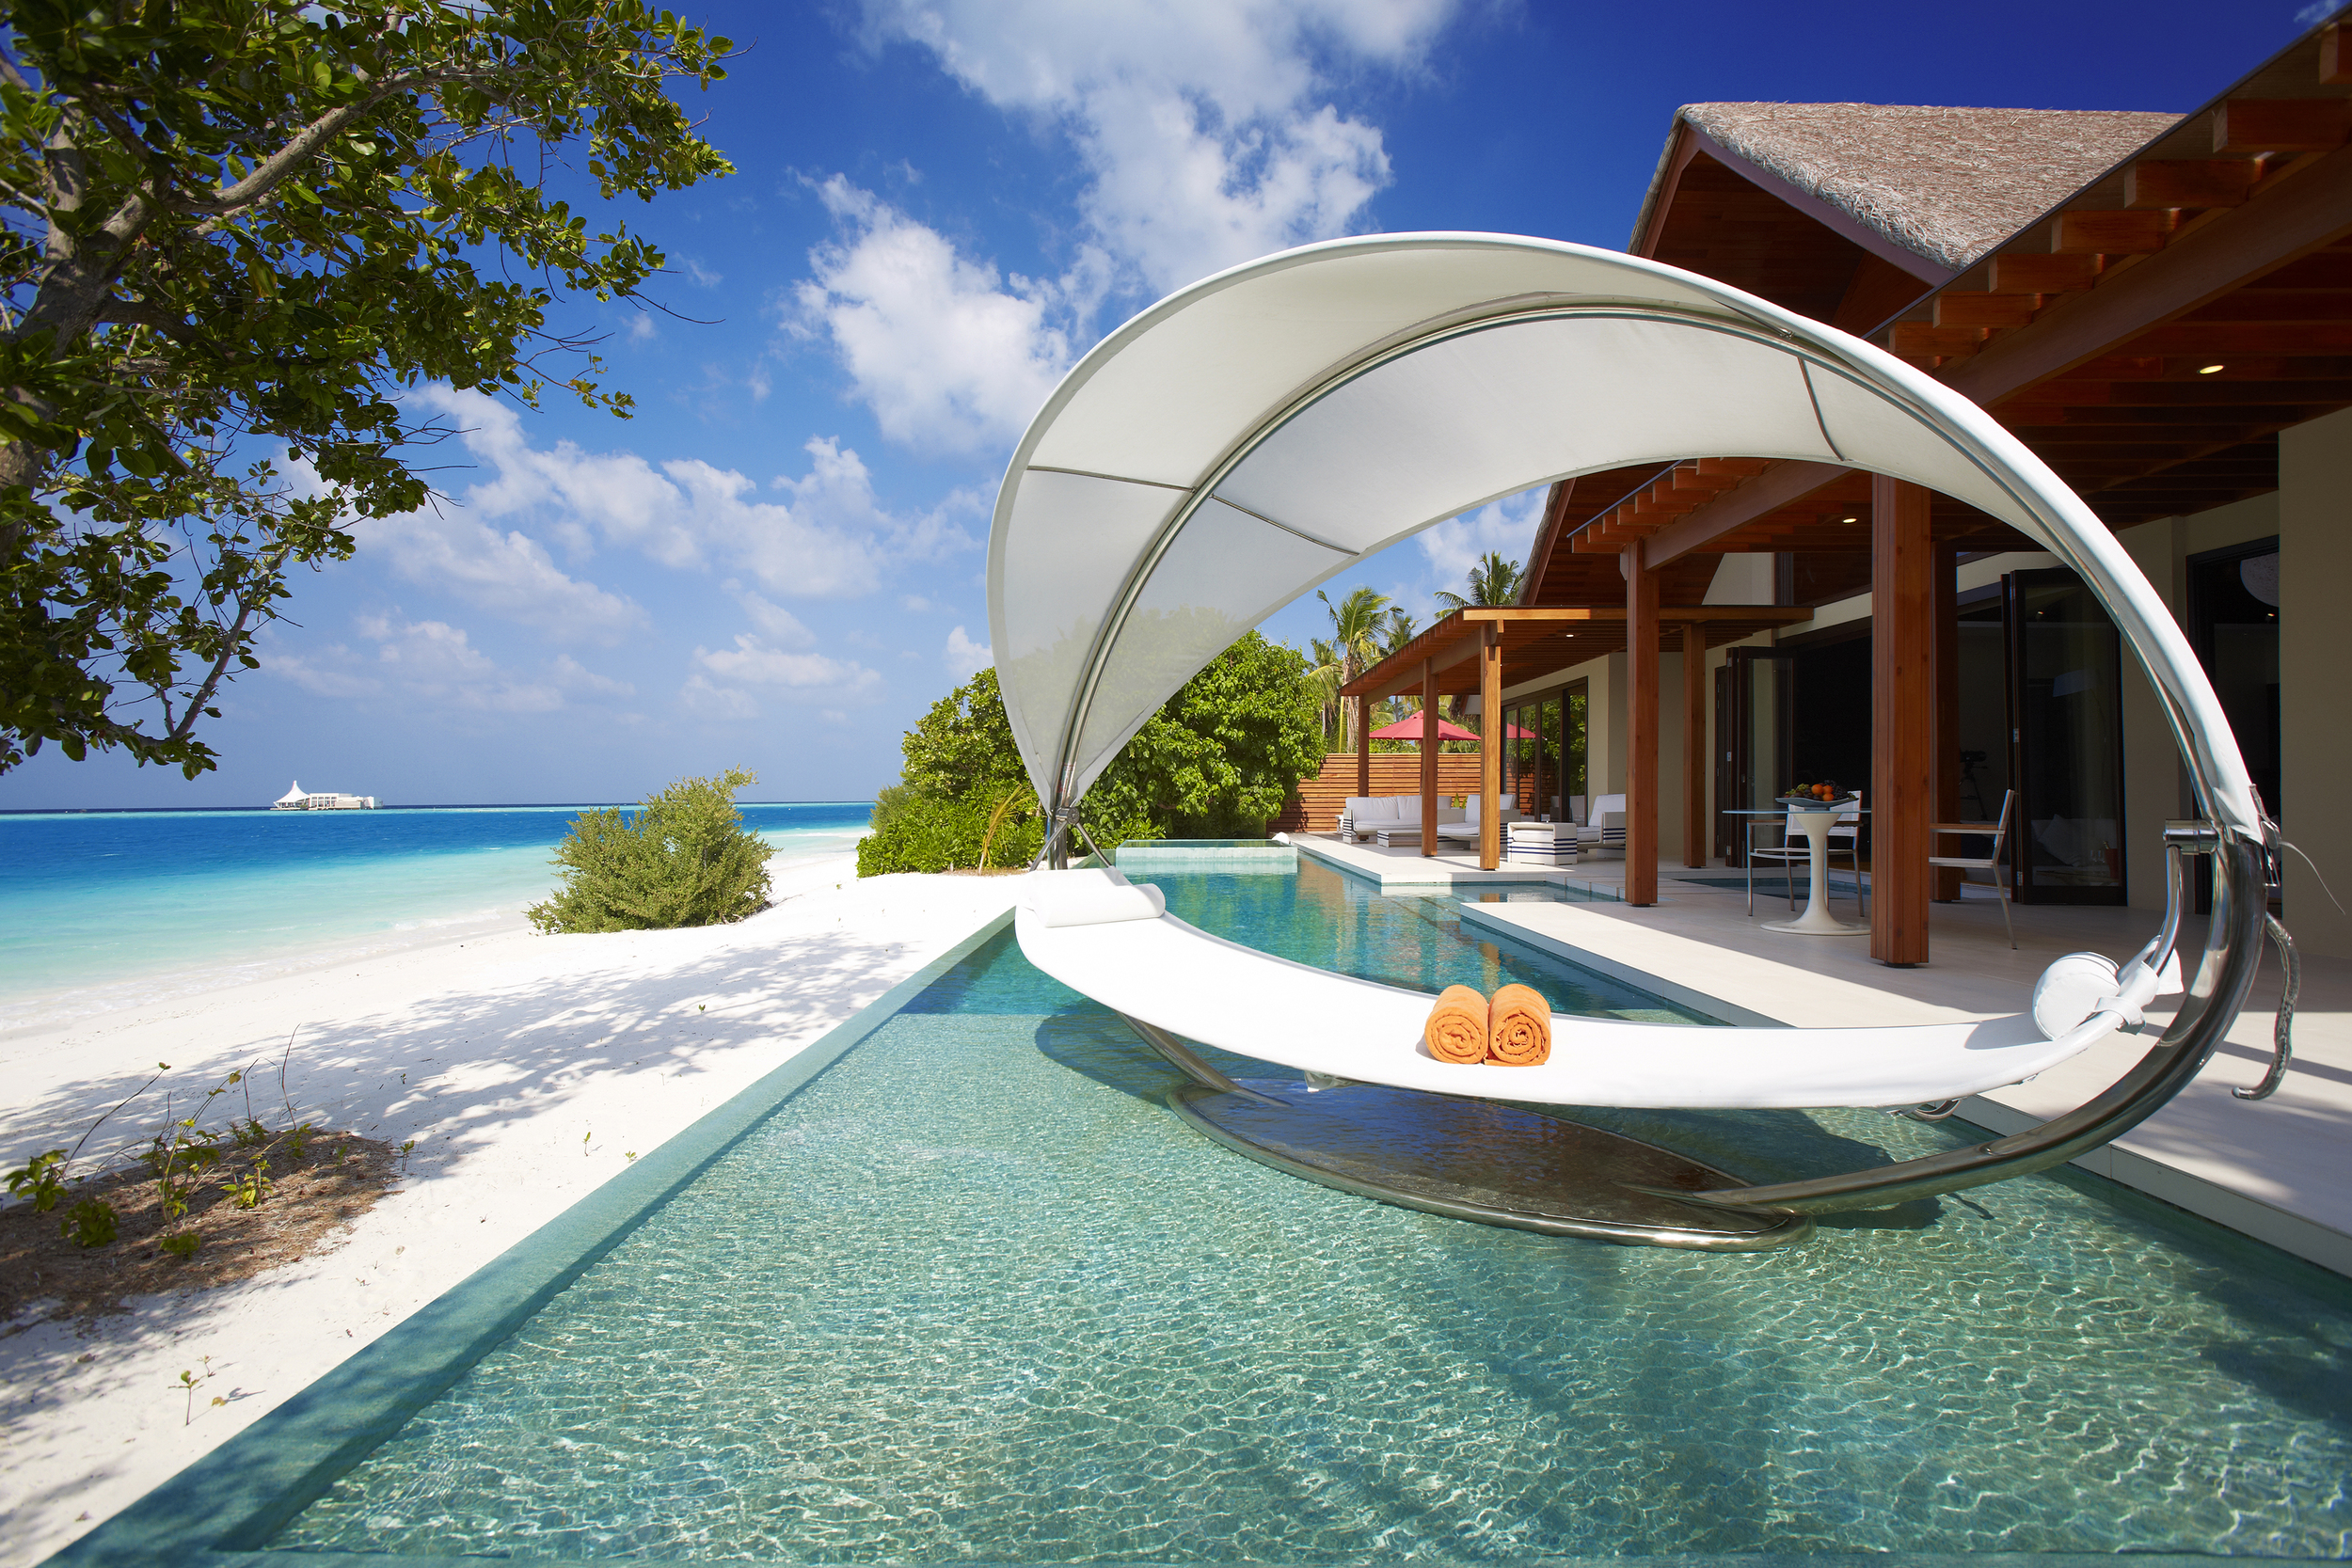 Hi_PNIY_61508858_Beach_Pavilion_Two_Bedroom_with_Pool_-_Exterior.jpg